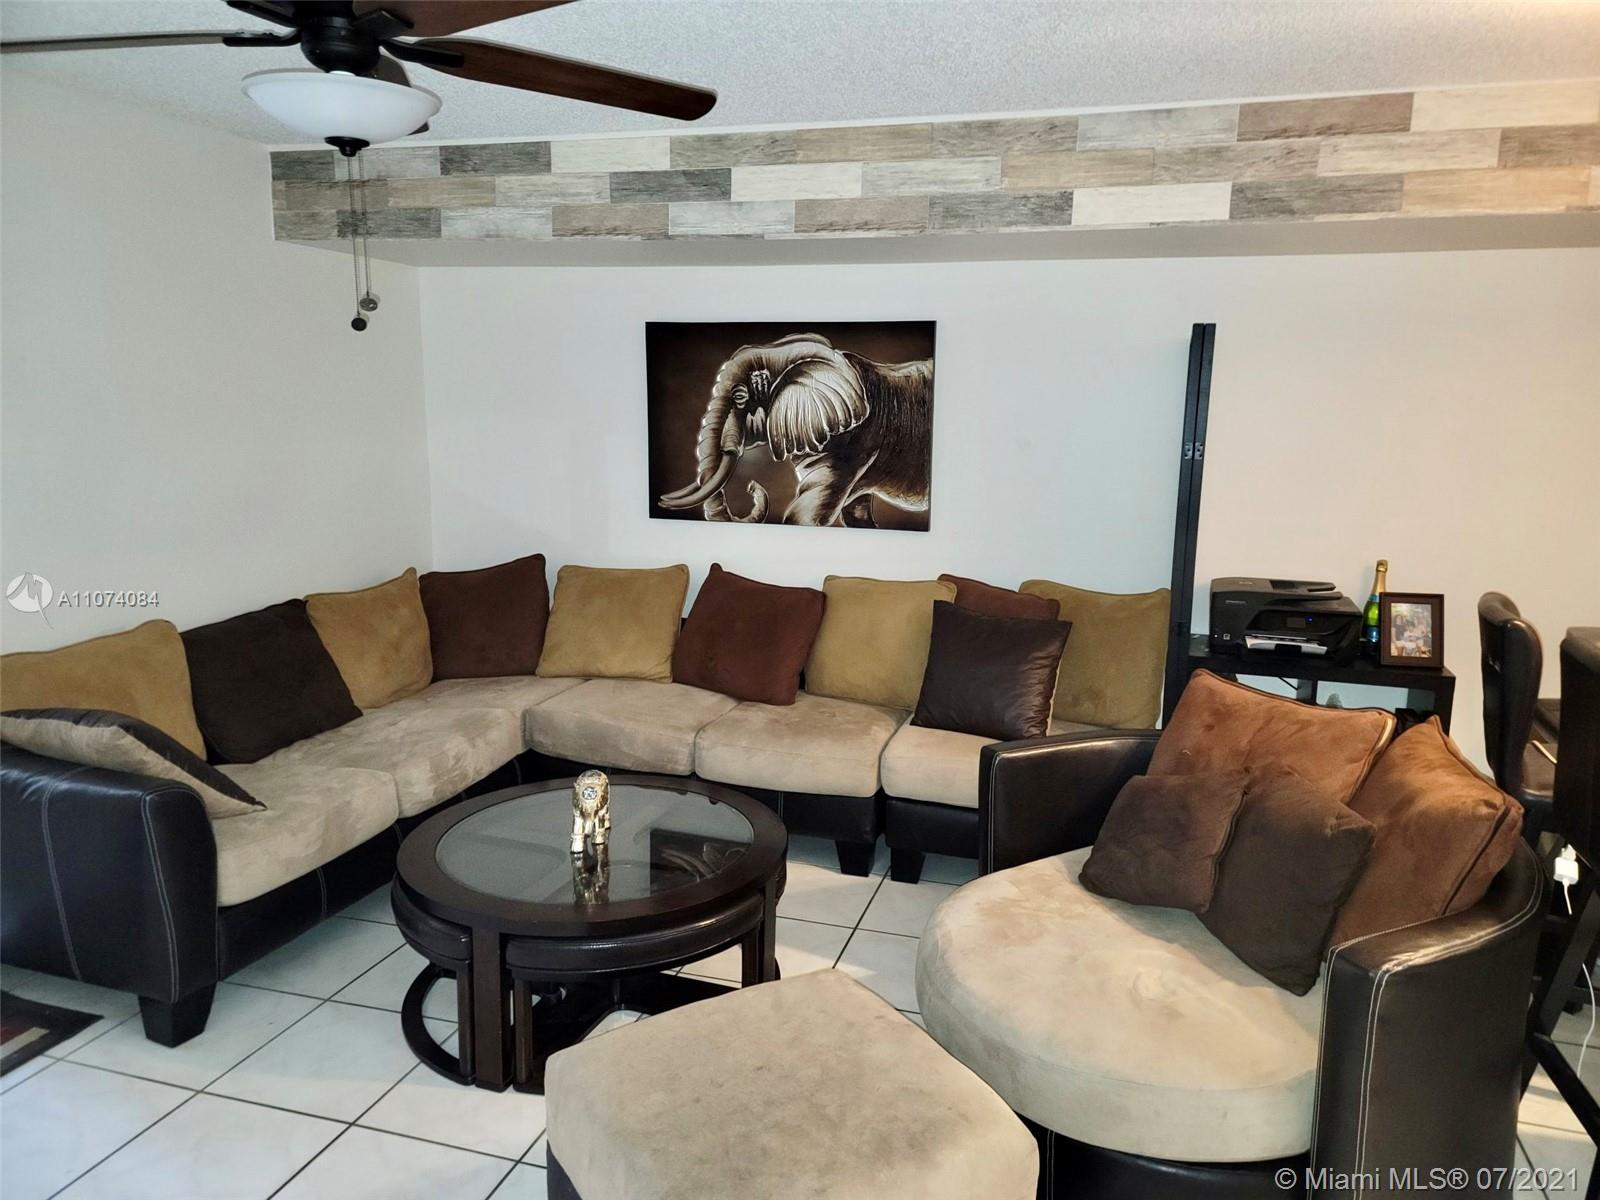 EXCELLENT SAN MARINO COVE 2/2 and a half WITH ONE CAR GARAGE.  The perfect family home. Updated Kitchen, half bath, and master Bathroom. Open living room kitchen and dining room area.   Well lit, spacious.  New stacked washer/dryer.  Screened in the patio next to the community pool.  Low monthly HOA, HOA covers roof repairs CANNOT LEASE FOR THE FIRST TWO YEARS.  PLEASE CALL THE OWNER TO SEE THE PROPERTY. GEORGE 9545794856 ROSE 9548019829   Note: **The owner of the property will be attending the open house** Saturday 07, 2021